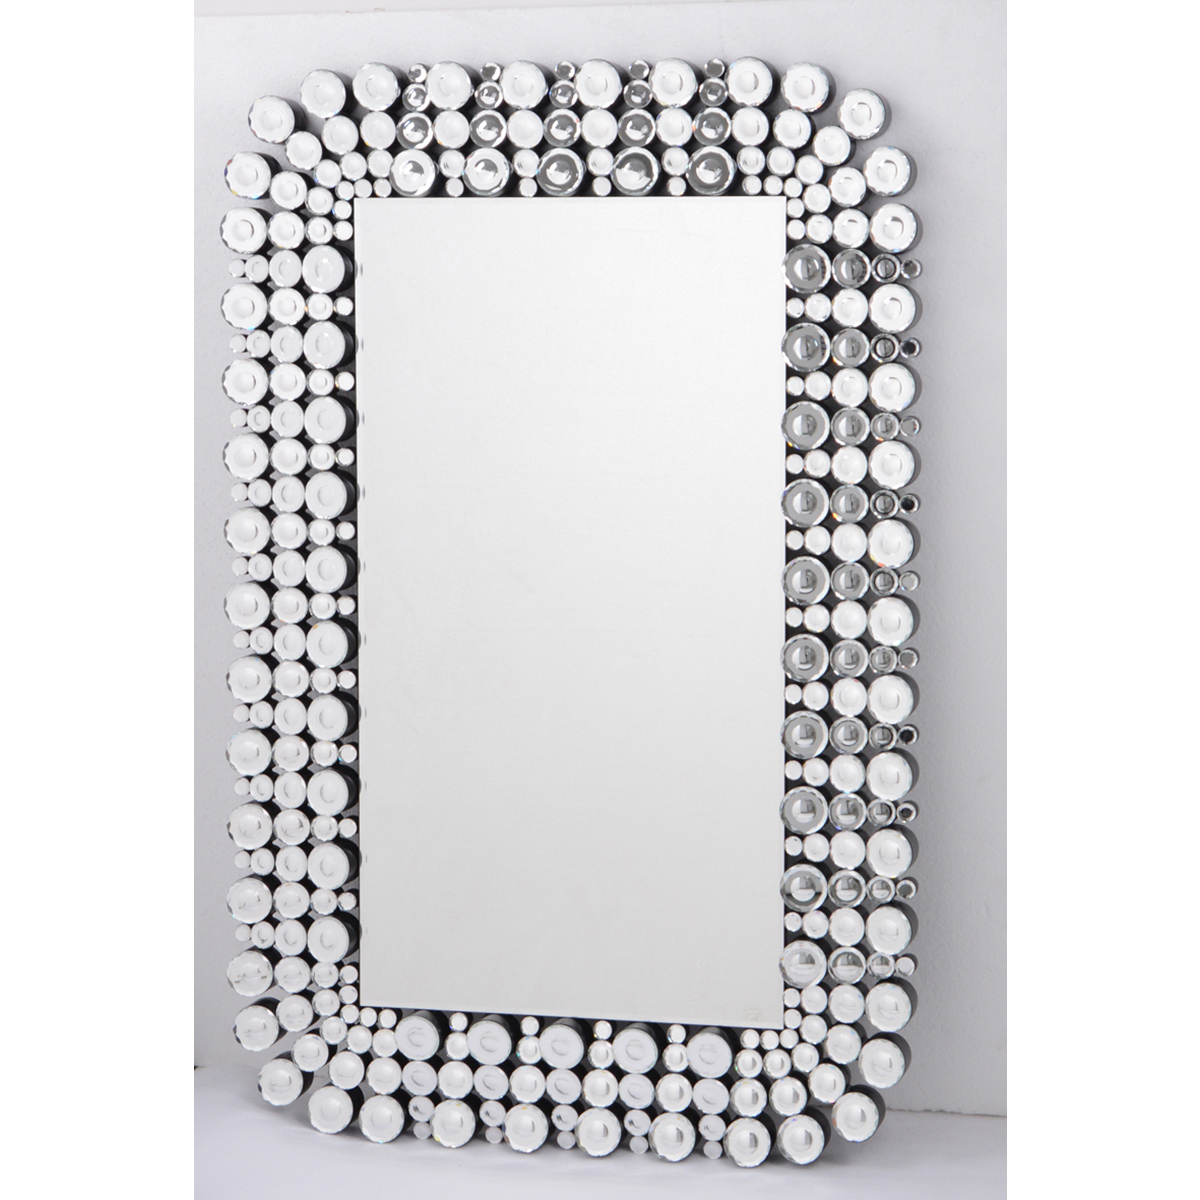 2019 Crystal Mirrors Jinhua Richtop Crafts Co., Ltd (View 2 of 20)